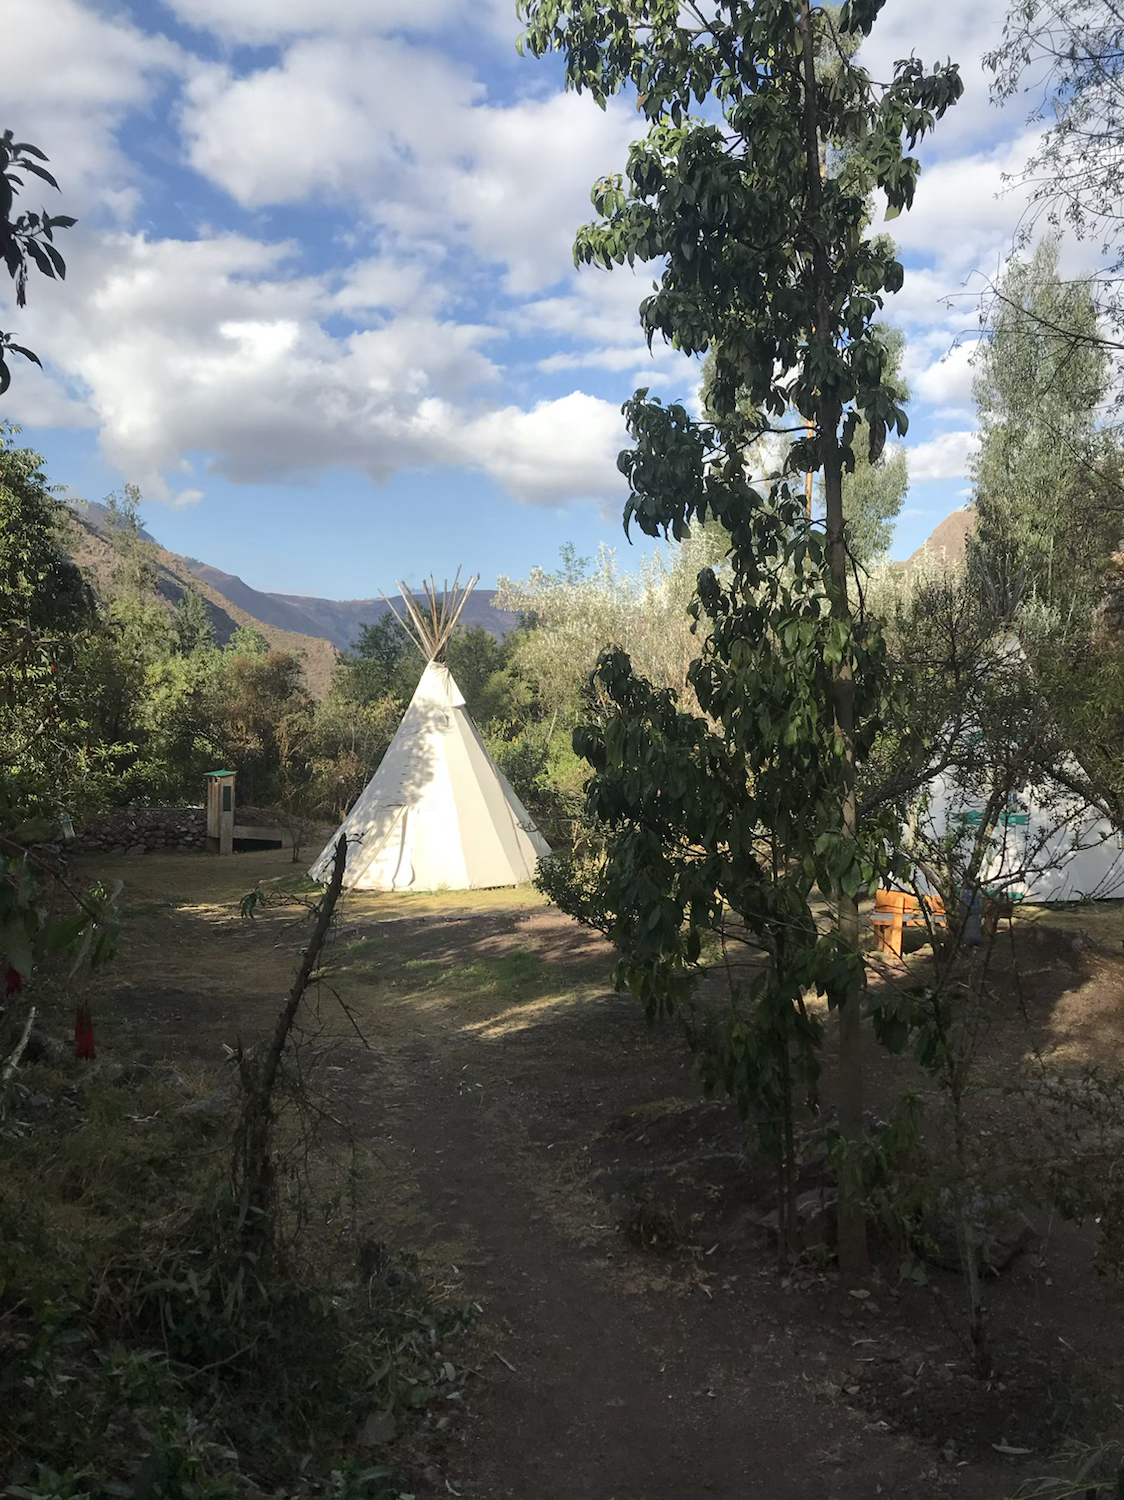 Healing retreat center, Peru